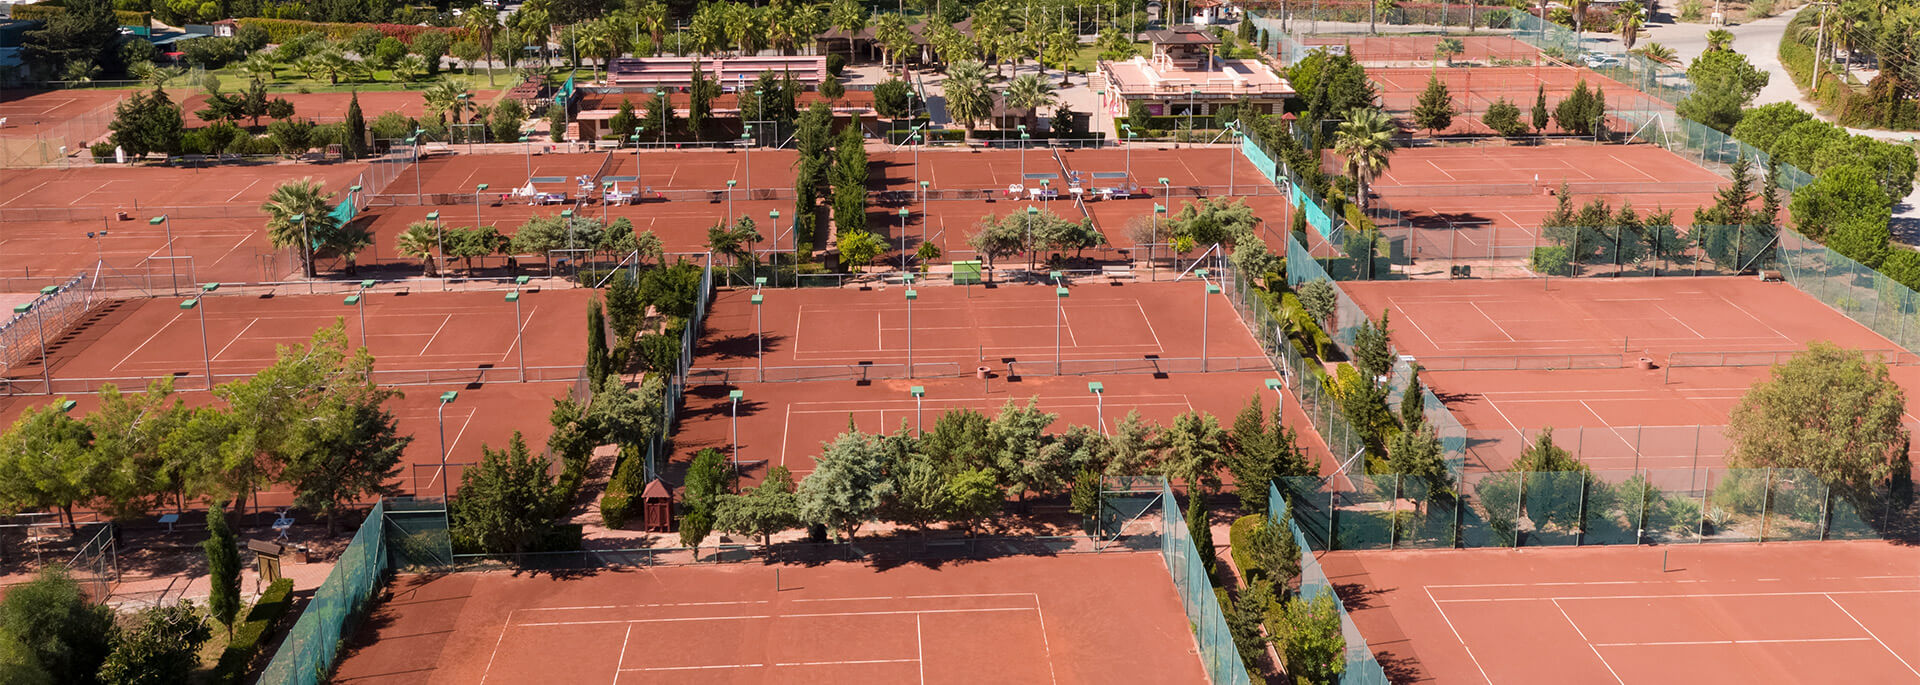 Tennis - Ali Bey Club Manavgat - Side, Antalya, Turkey